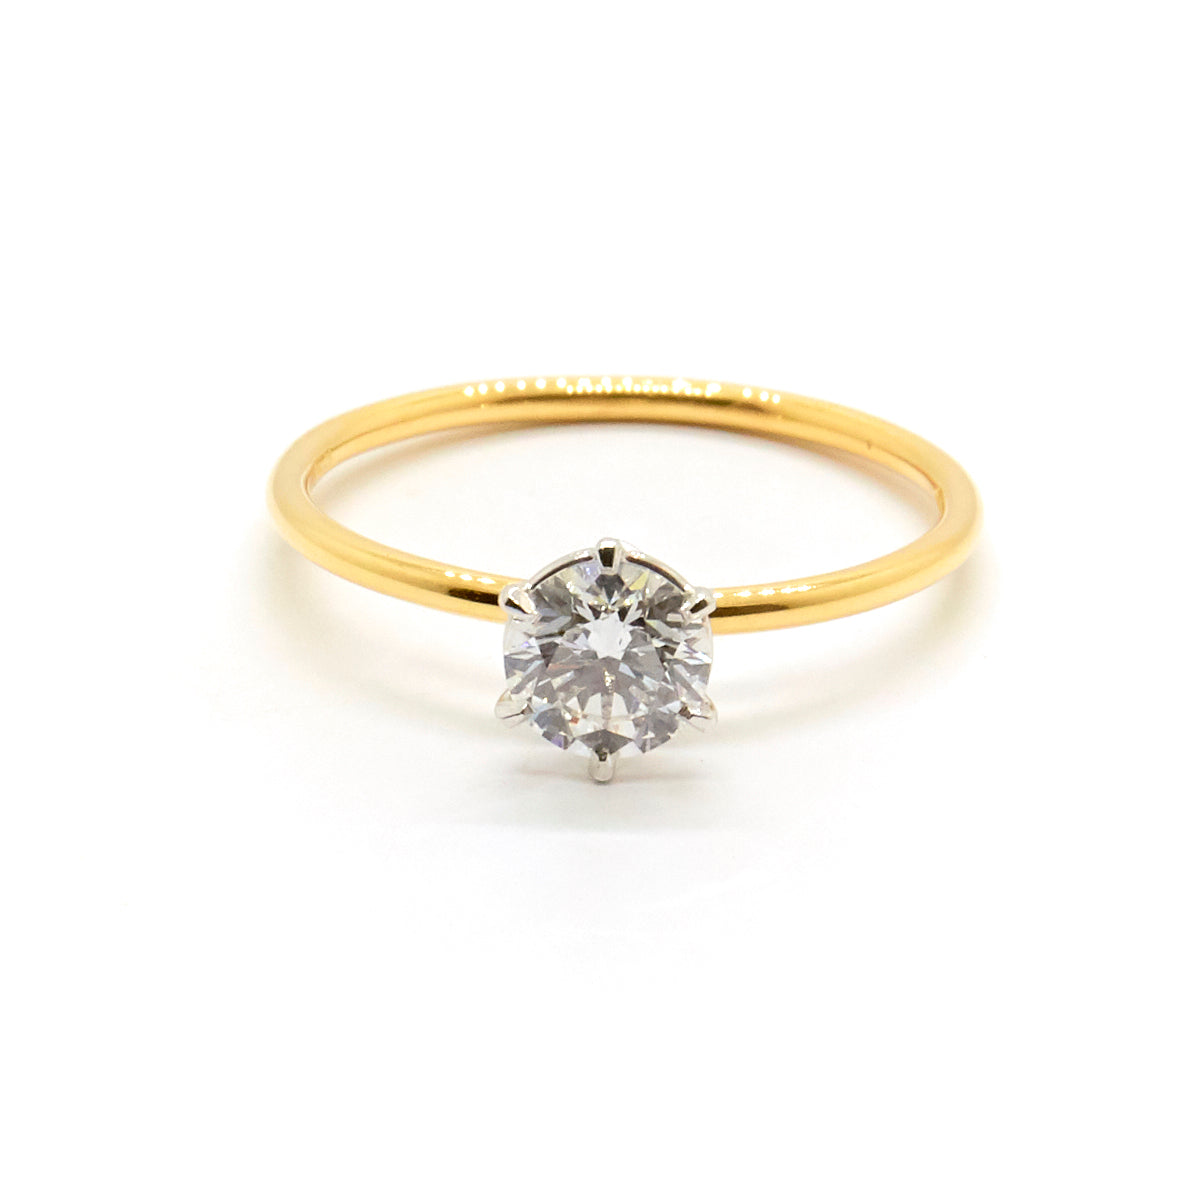 Signature Solitaire | 0.62 carat Diamond